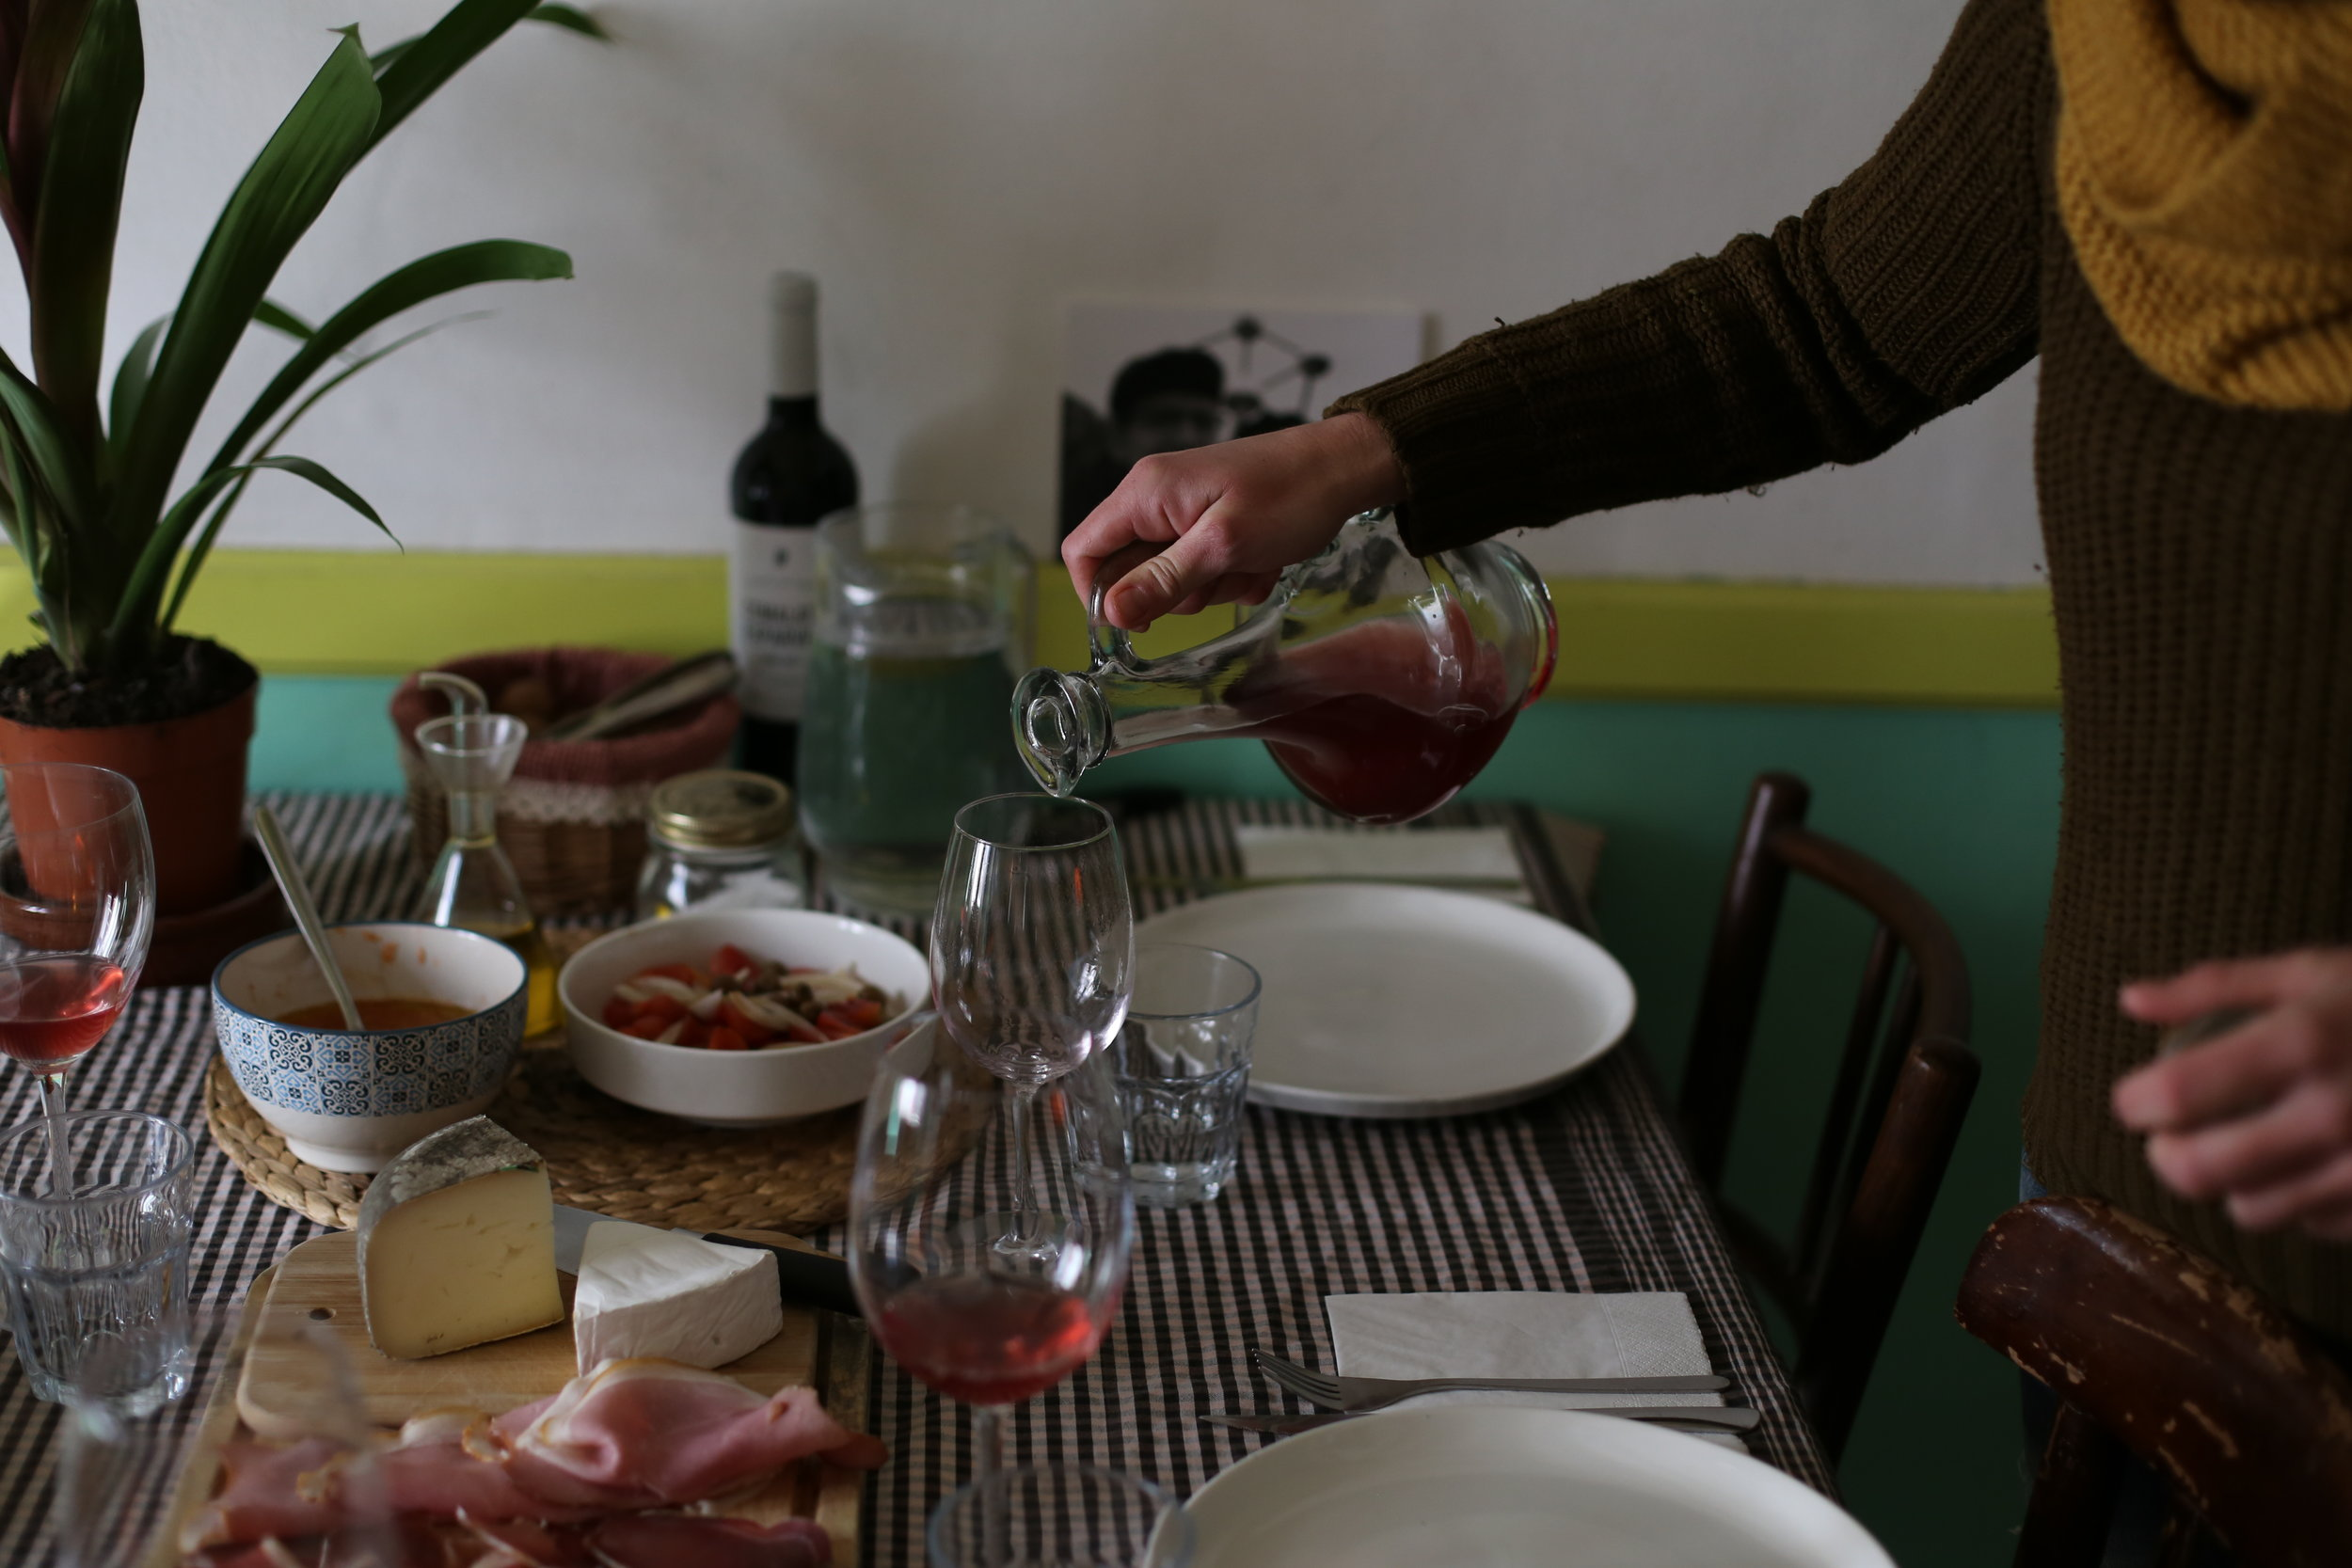 Another of Eva's amazing lunch with tastings. We were about to meet Esparver.